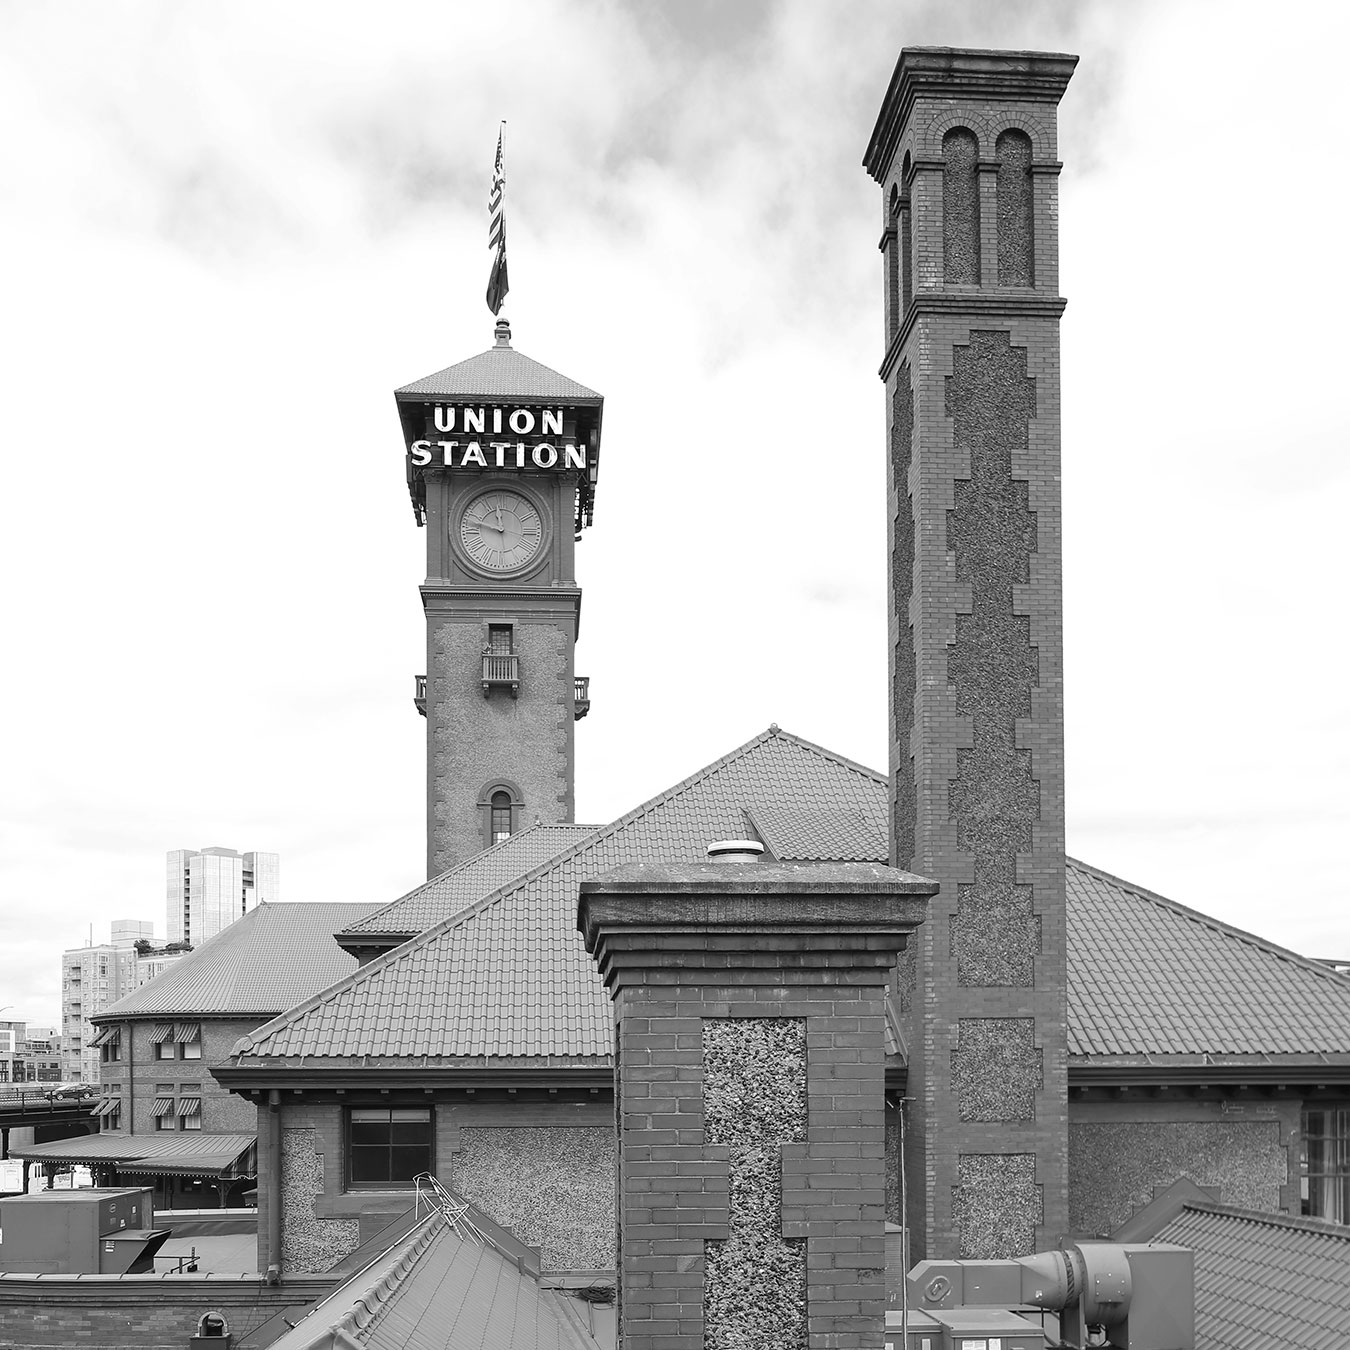 URM Building Portland Union Station with Sign in Black and White with Towers